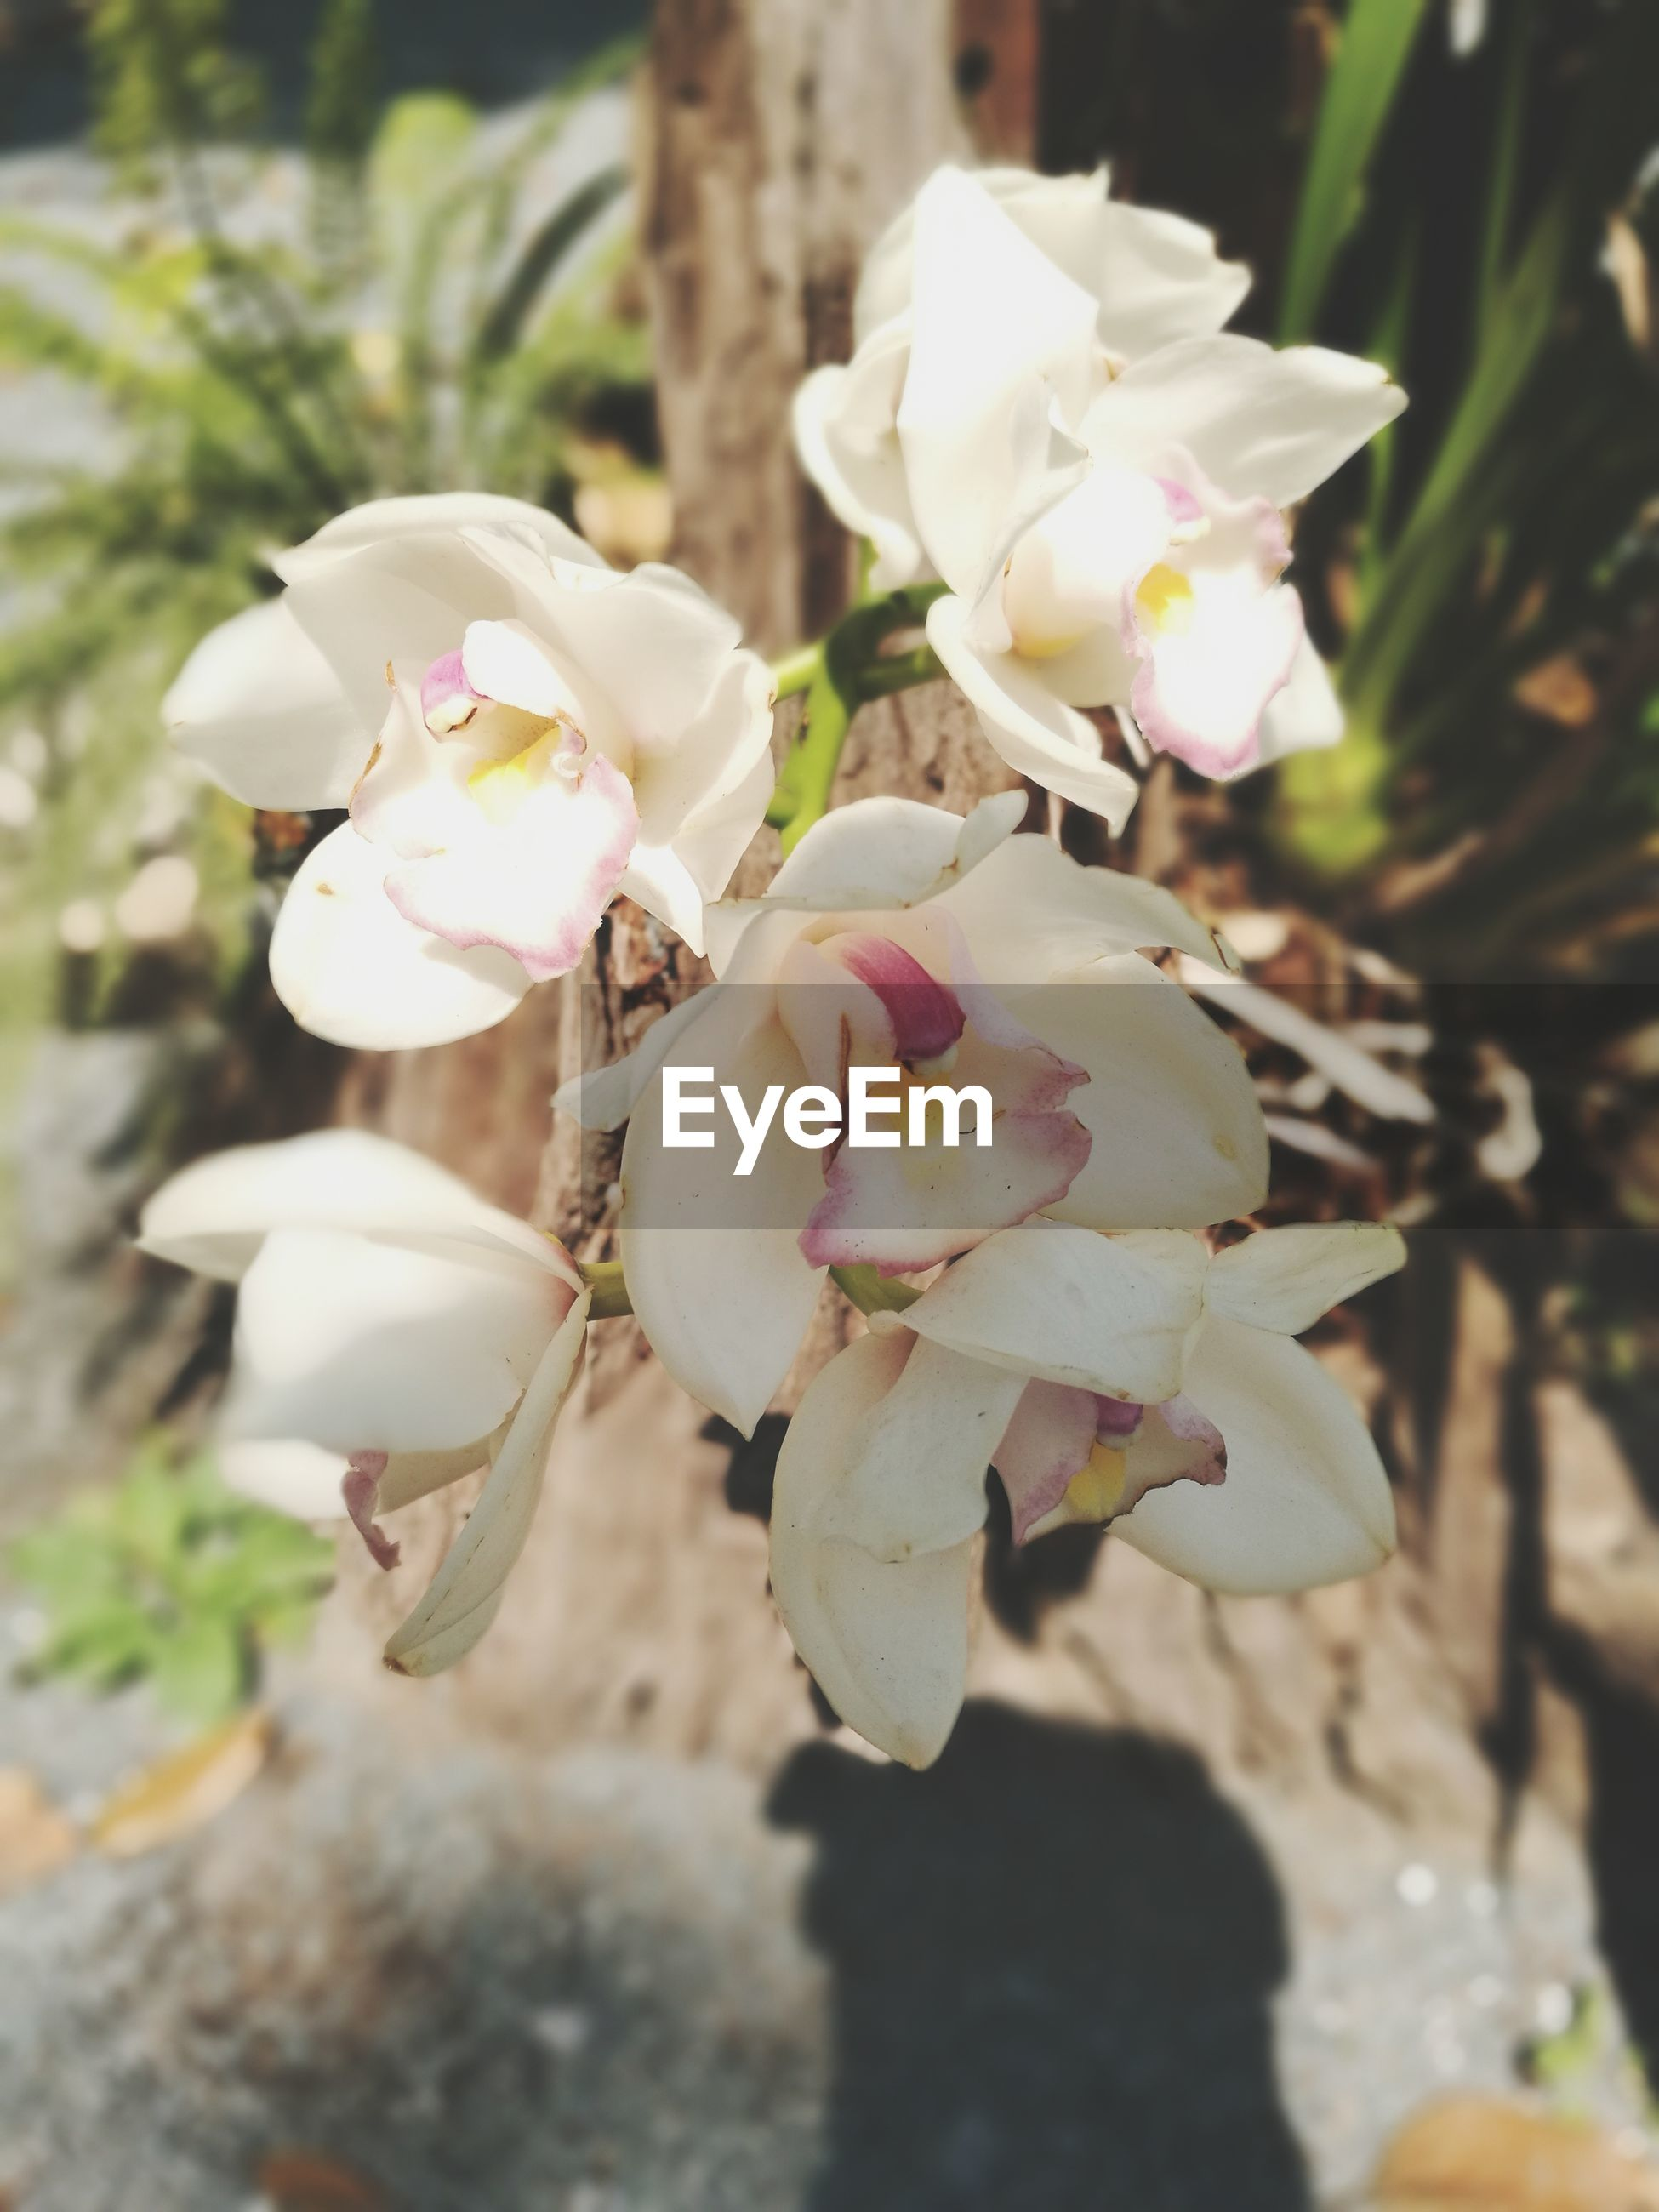 flower, petal, white color, beauty in nature, fragility, nature, freshness, close-up, flower head, no people, growth, outdoors, day, plant, blooming